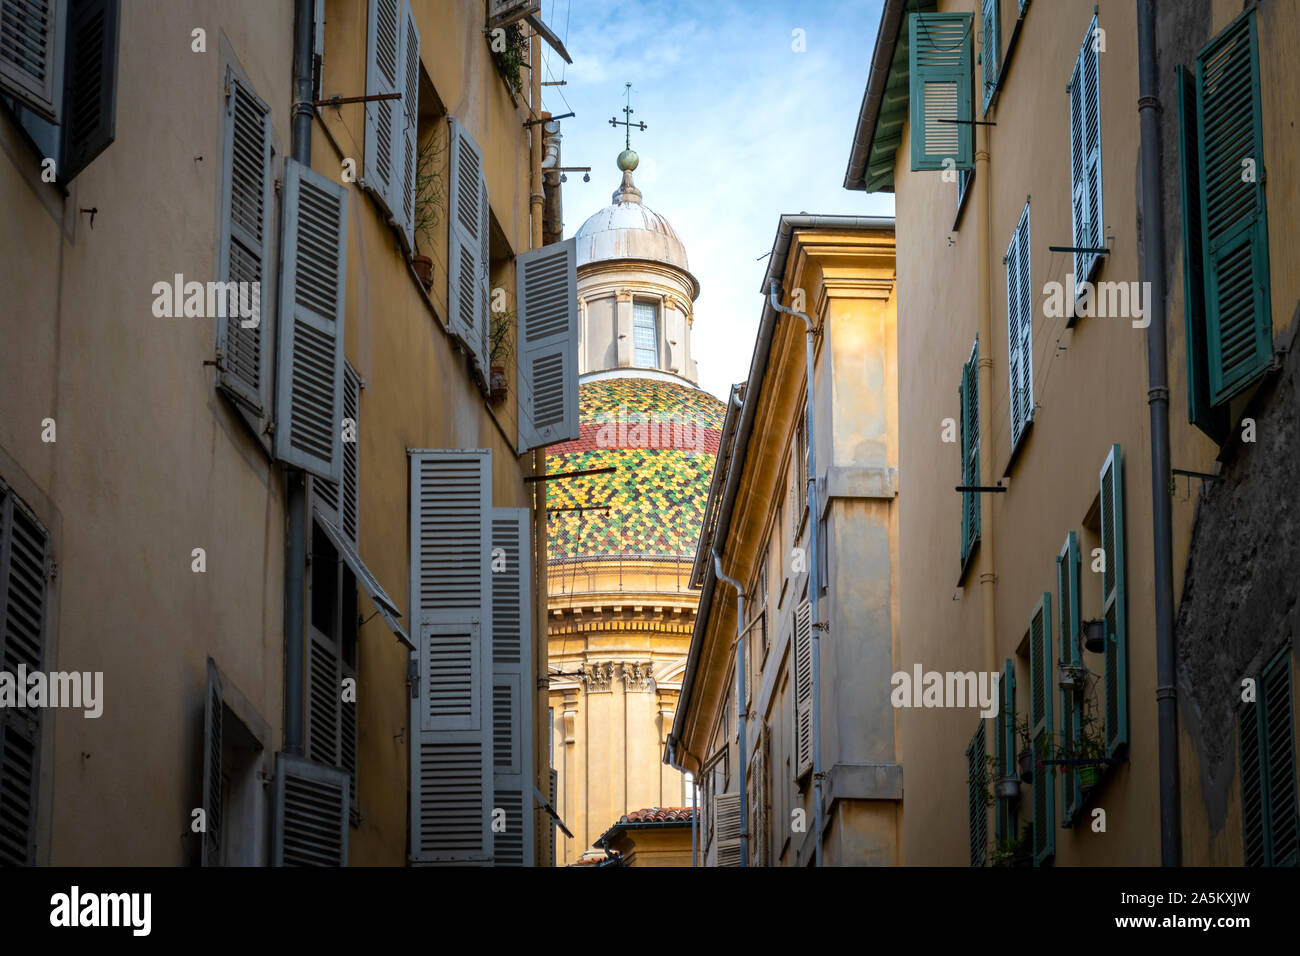 The dome and cupola of Sainte Reparate or Nice Cathedral on Place Rossetti in the old town Vieux City on the French Riviera in  Nice, France. Stock Photo